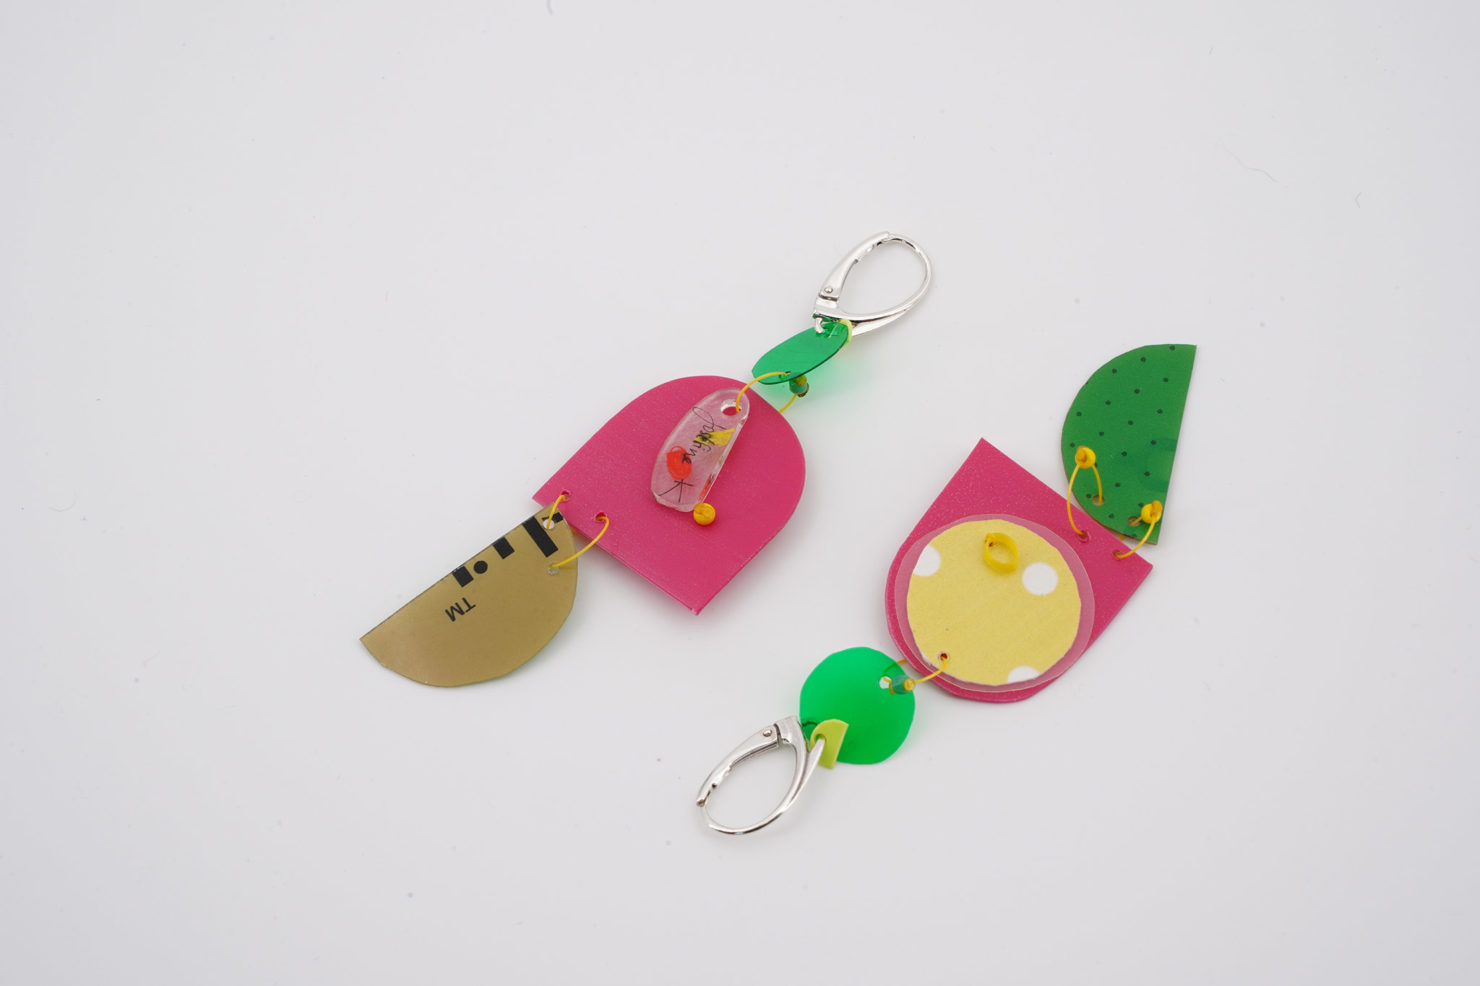 HANDMADE EARRINGS WITH CUTTED RECYCLED PLASTIC-PARROTS